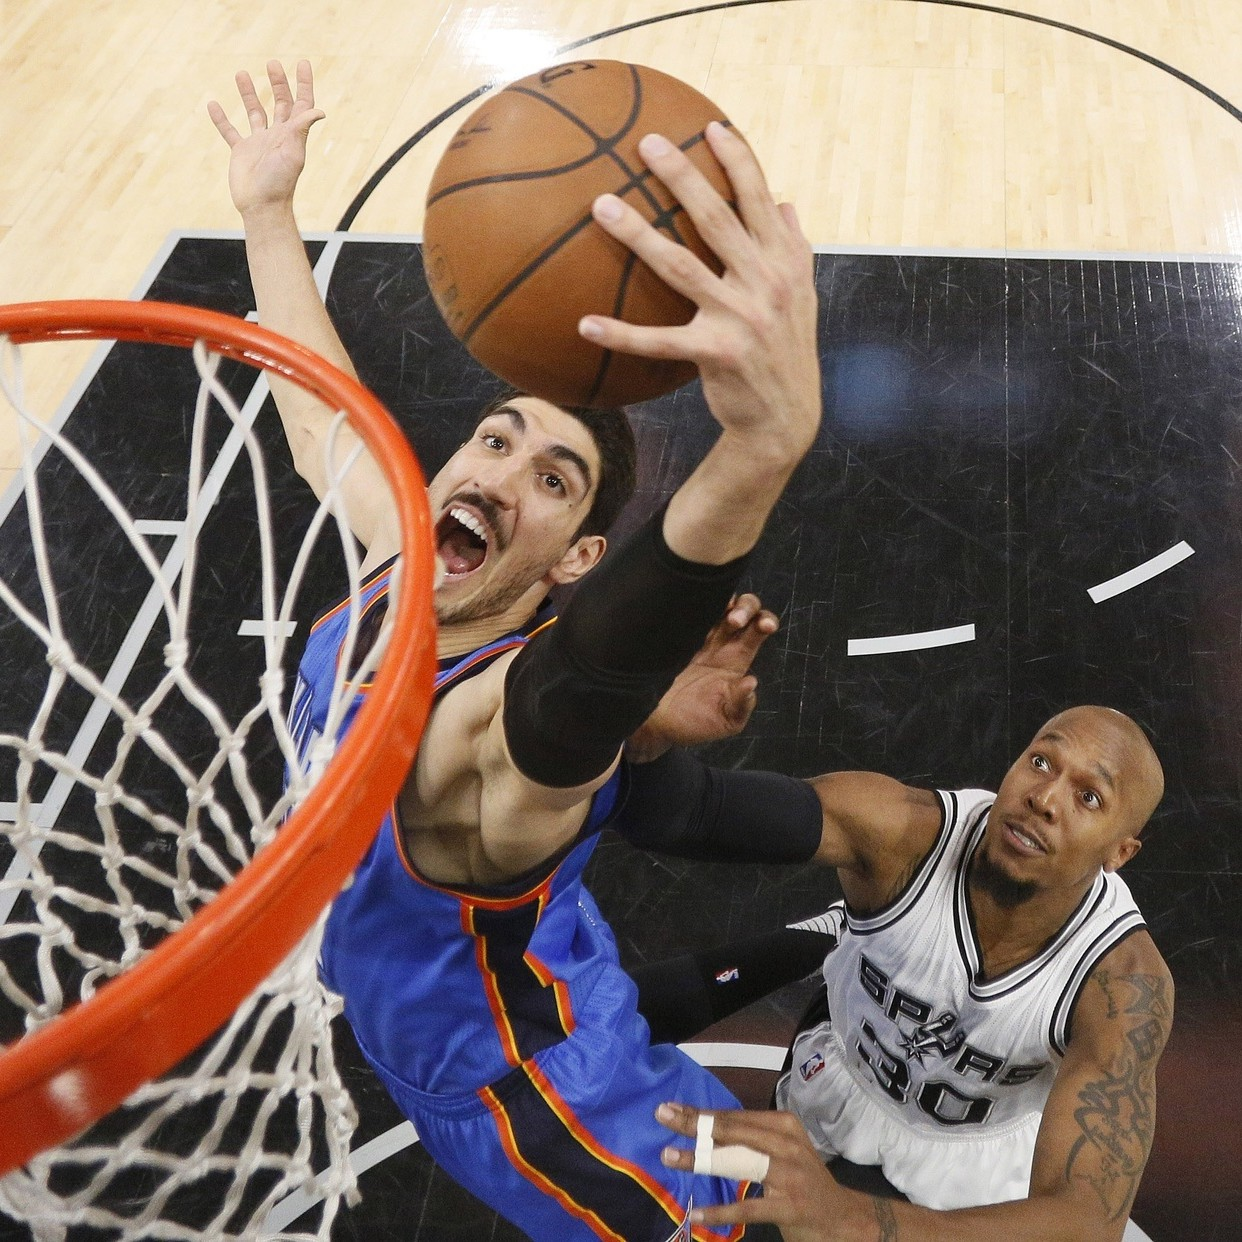 Why-enes-kanter-has-a-new-name-and-why-his-family-disowned-him-1470688581.jpg?crop=0